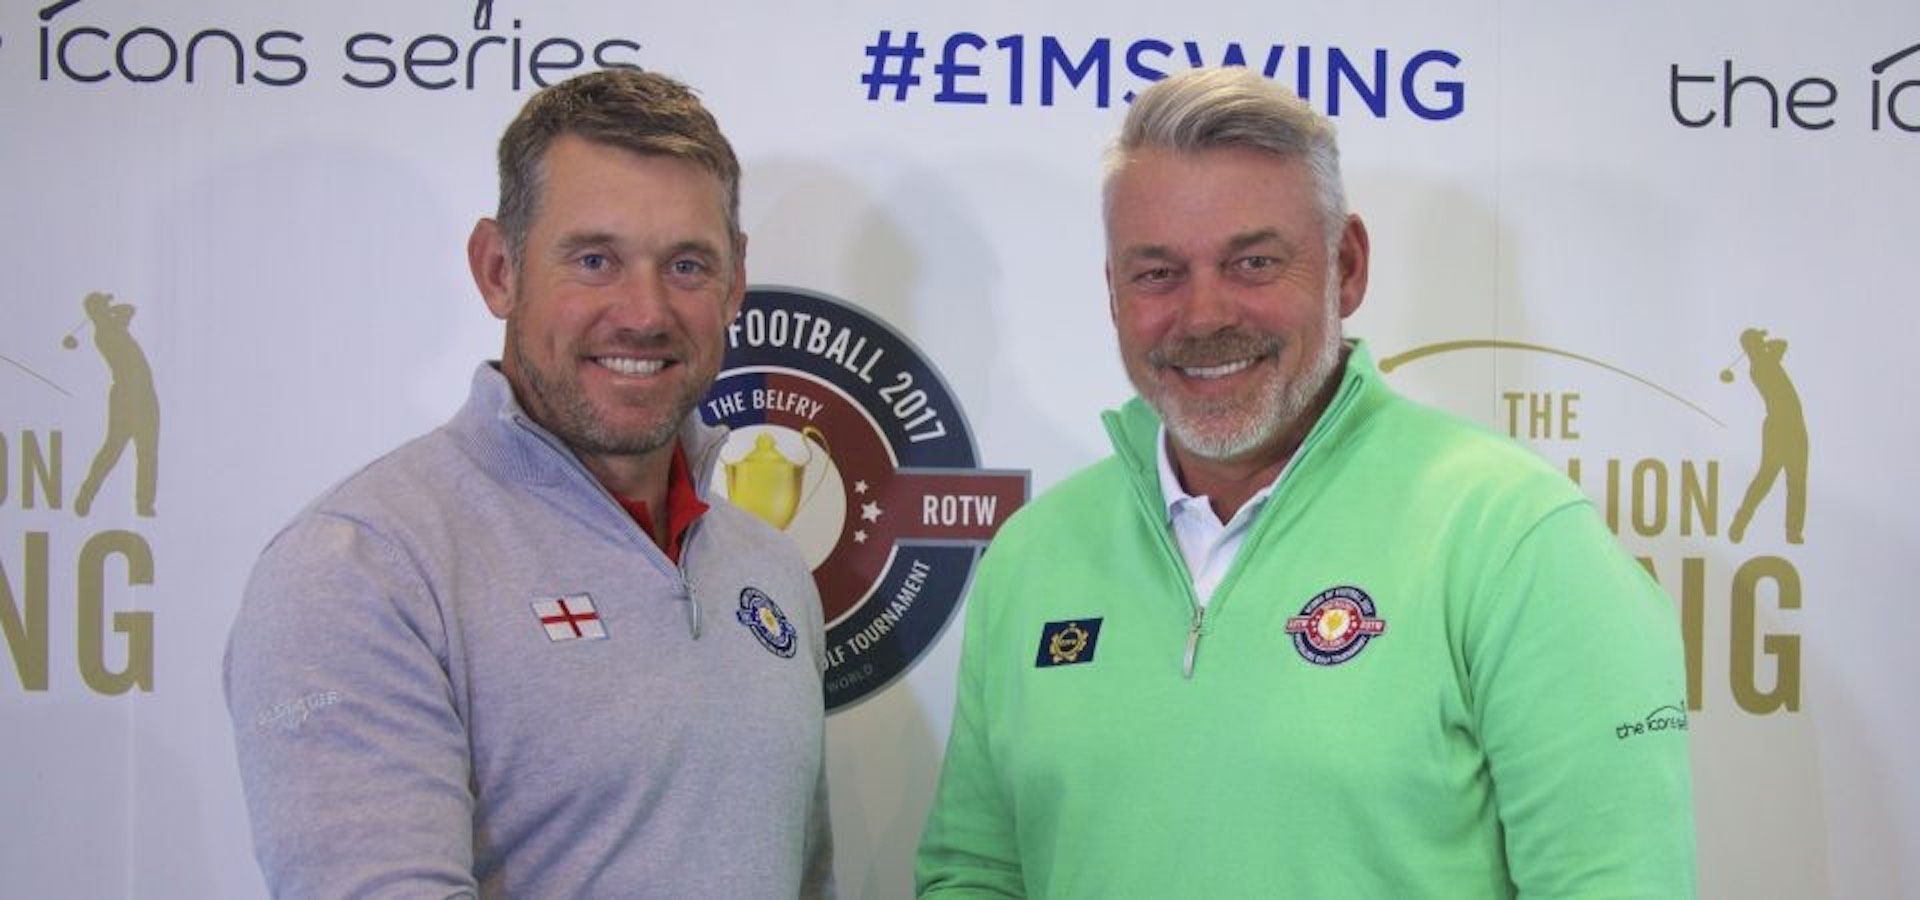 Lee Westwood launches Icons of football